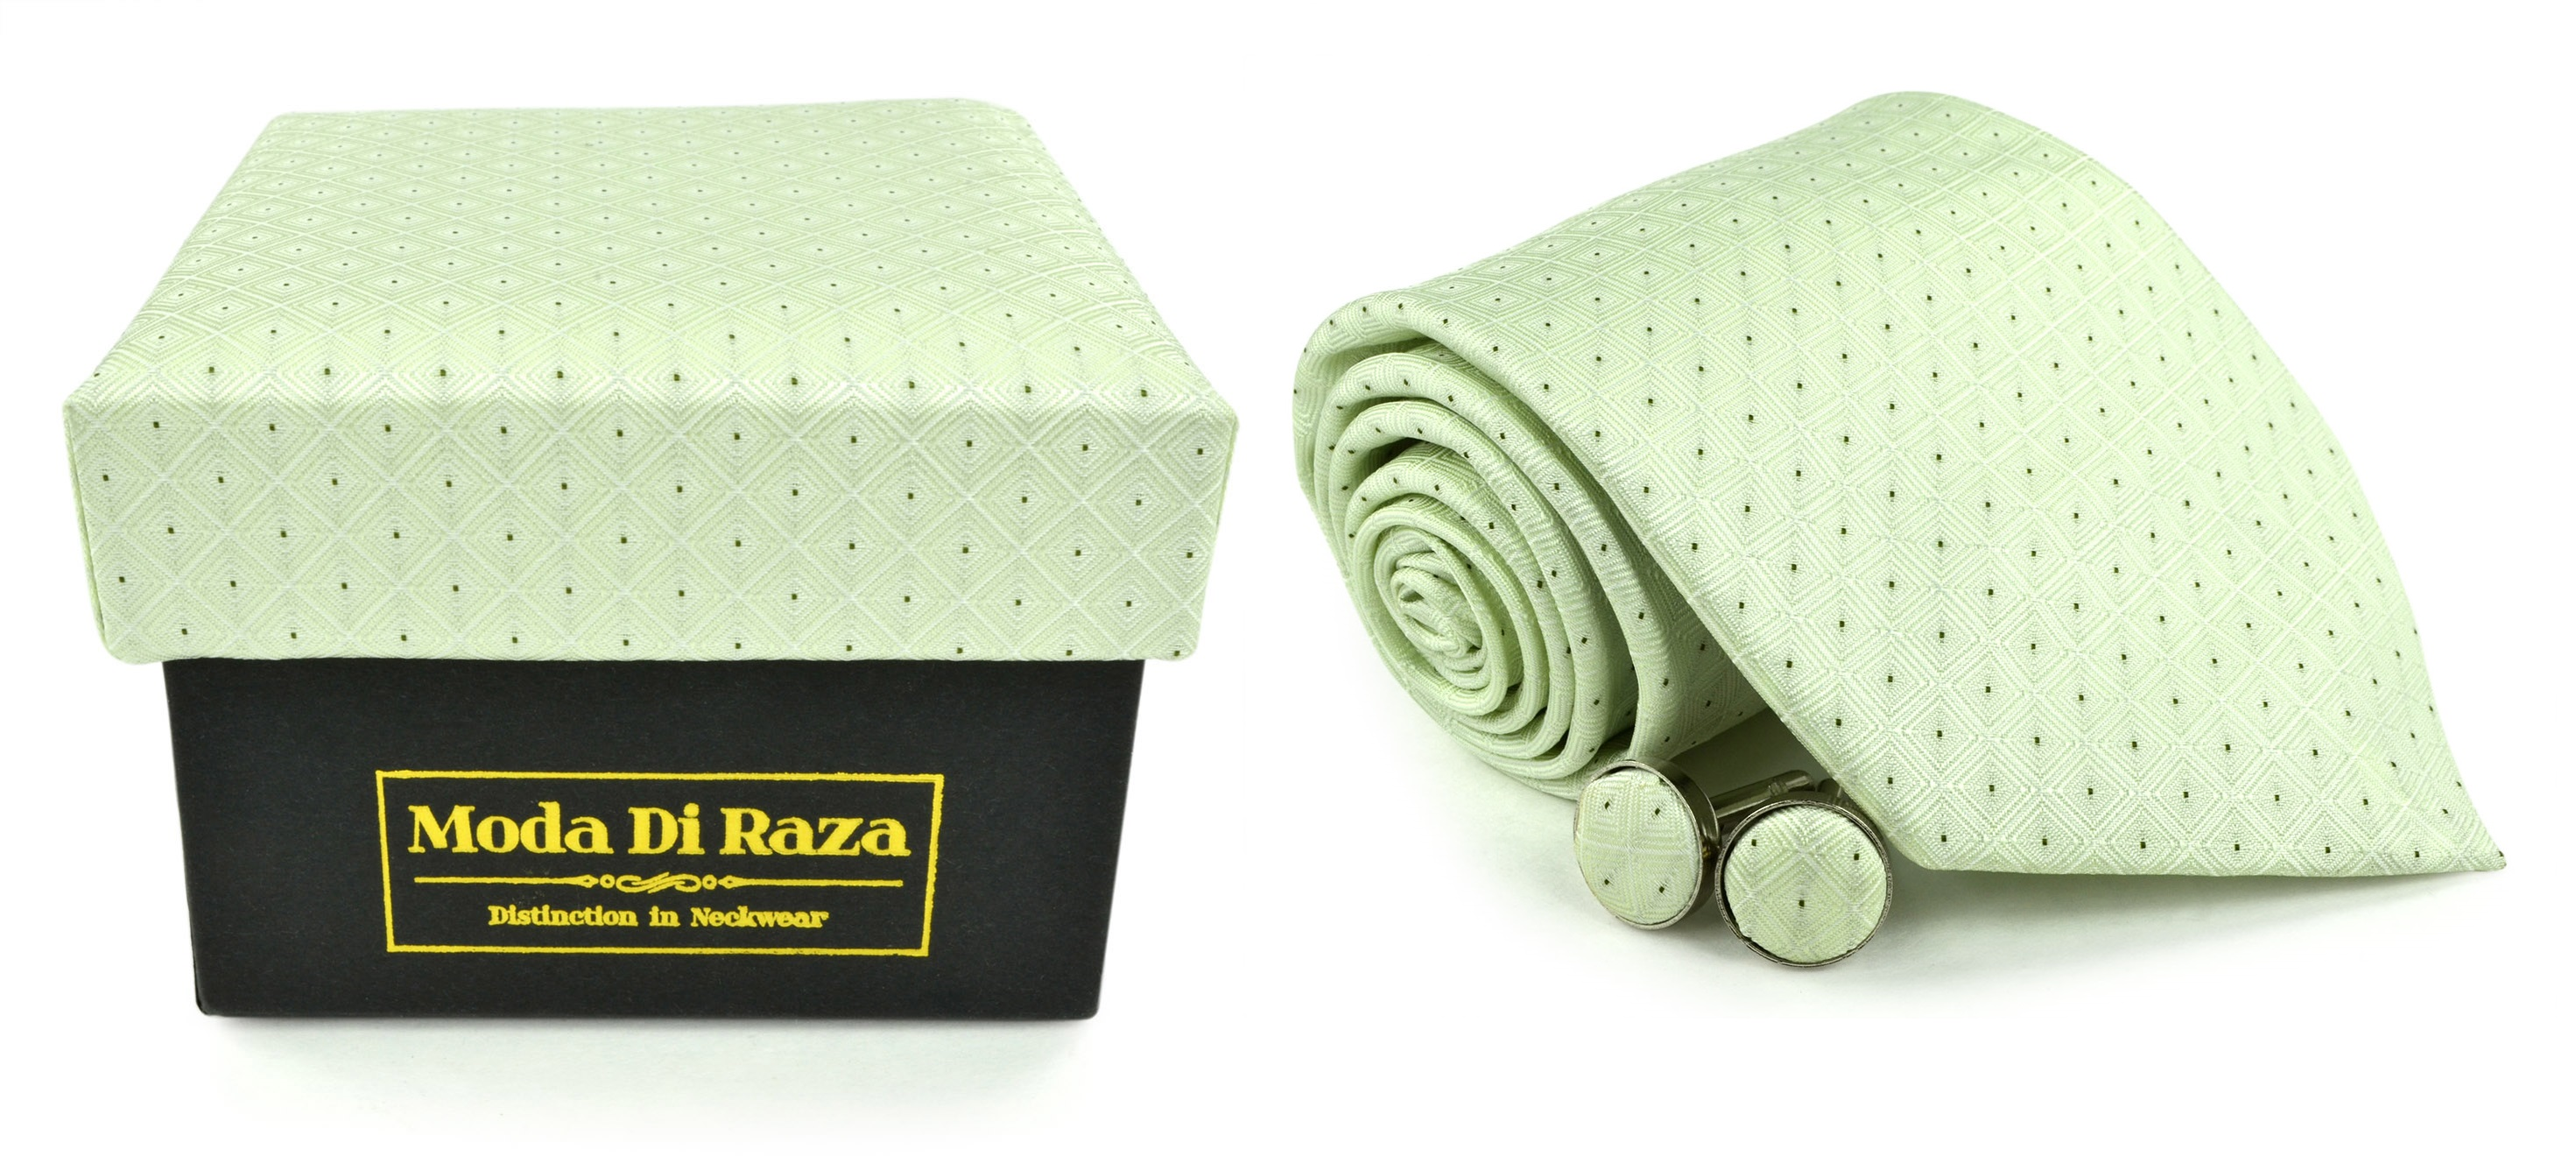 Moda Di Raza Men's NeckTie 3.0 With Cufflink n Gift Box For Formal Events - Light Mint